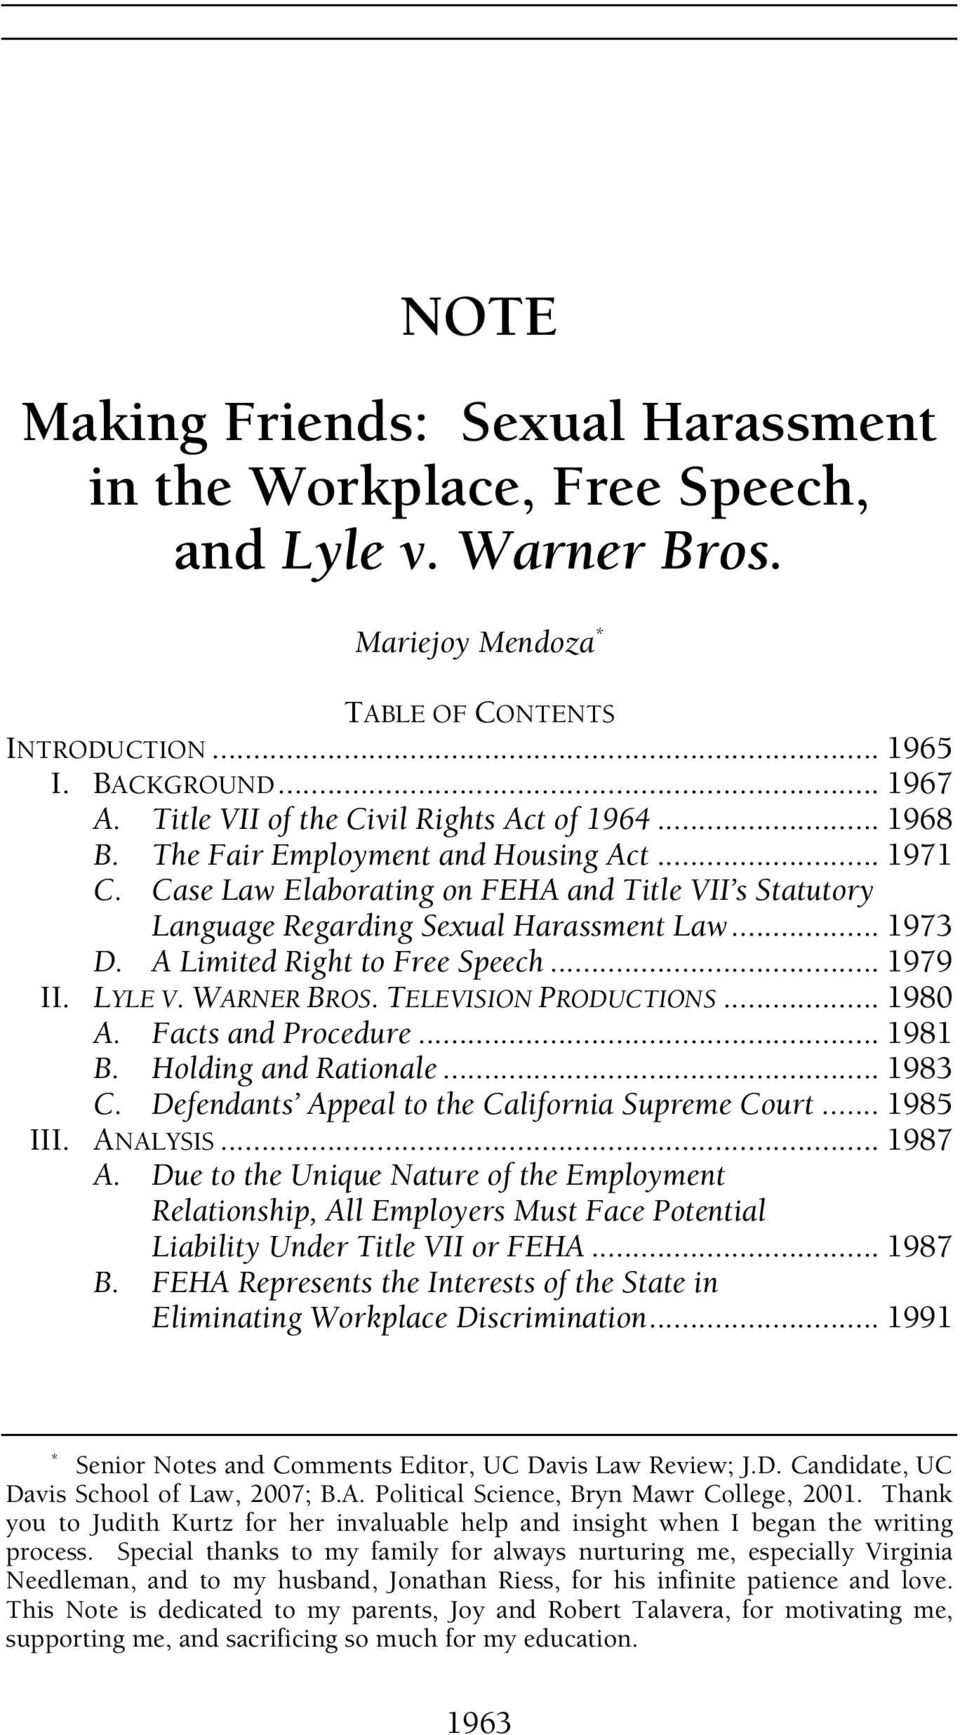 .. 1973 D. A Limited Right to Free Speech... 1979 II. LYLE V. WARNER BROS. TELEVISION PRODUCTIONS... 1980 A. Facts and Procedure... 1981 B. Holding and Rationale... 1983 C.